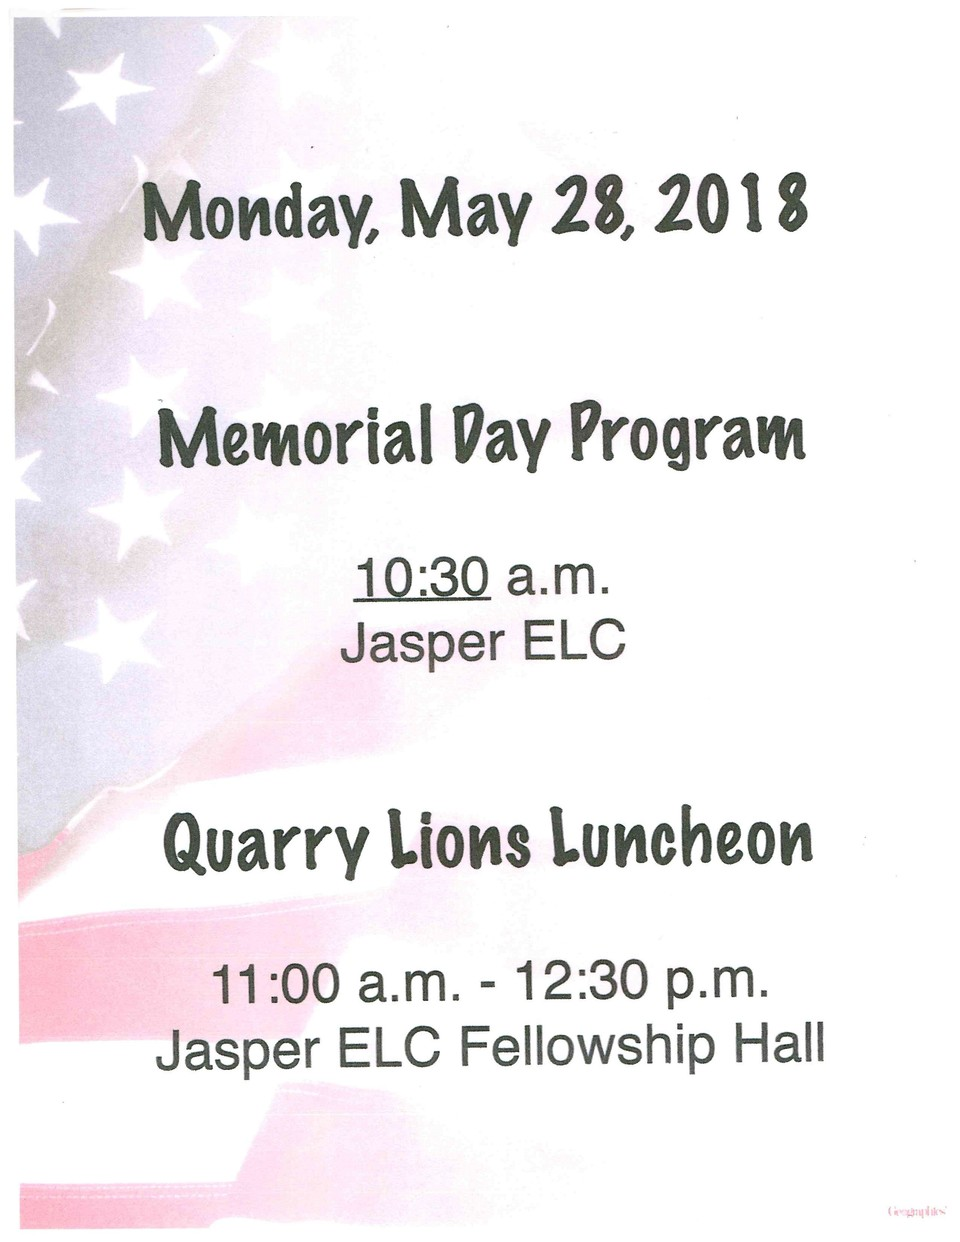 Memorial Day Program/Quarry Lions Luncheon